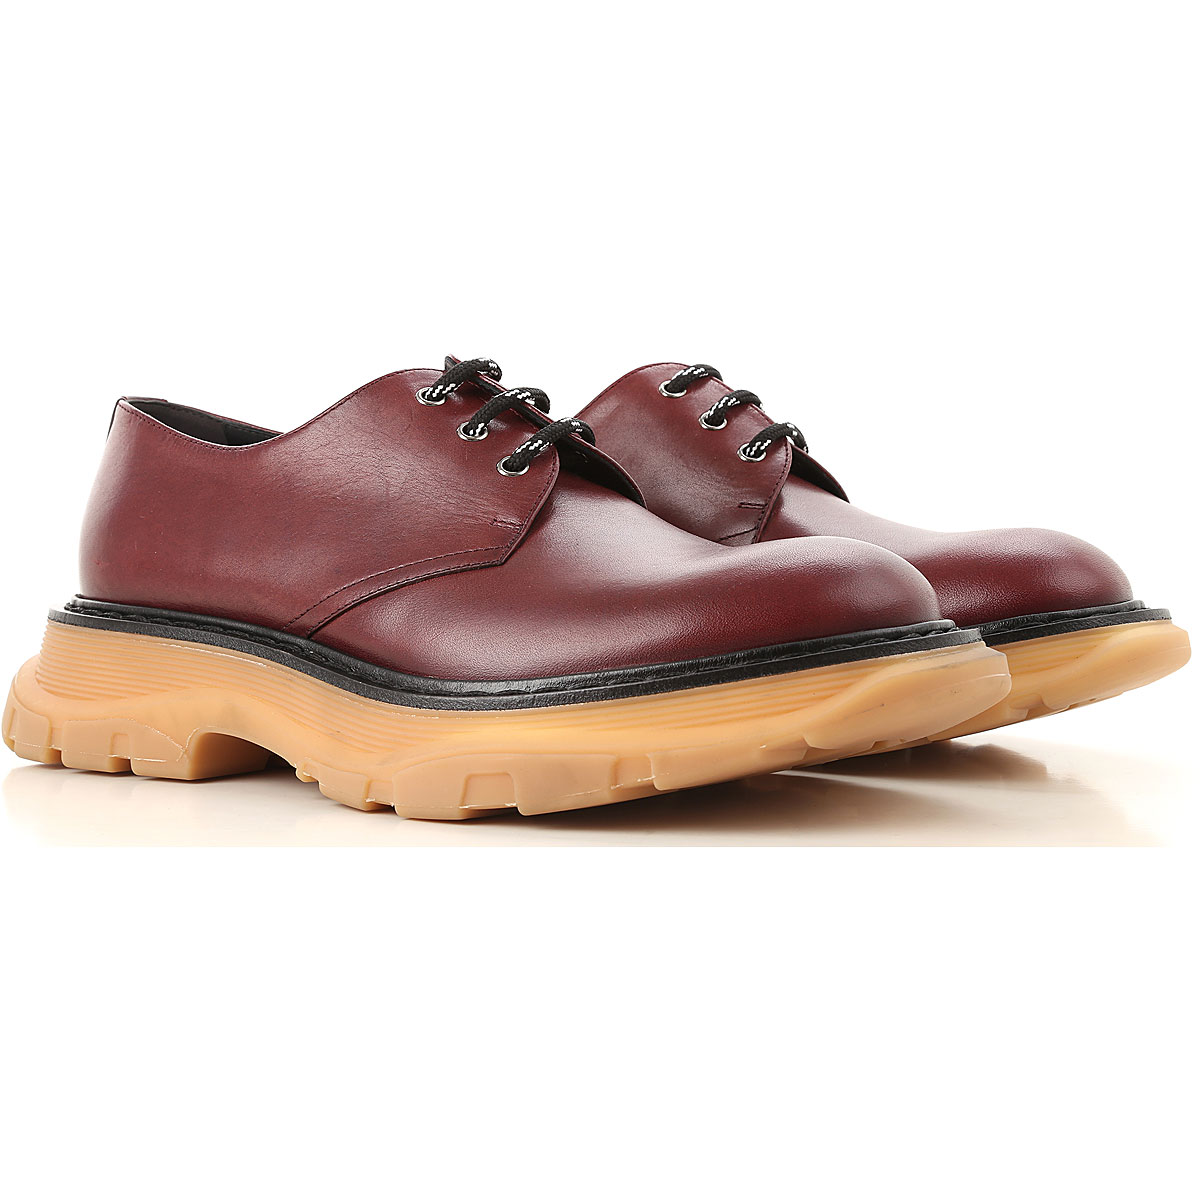 Image of Alexander McQueen Lace Up Shoes for Men Oxfords, Derbies and Brogues, Aubergine, Leather, 2017, EUR 40 - US 7 - UK 6 EUR 41 - US 8 - UK 7 EUR 42 - US 9 - UK 8 EUR 44 - US 11 - UK 10 EUR 45 - US 12 - UK 11